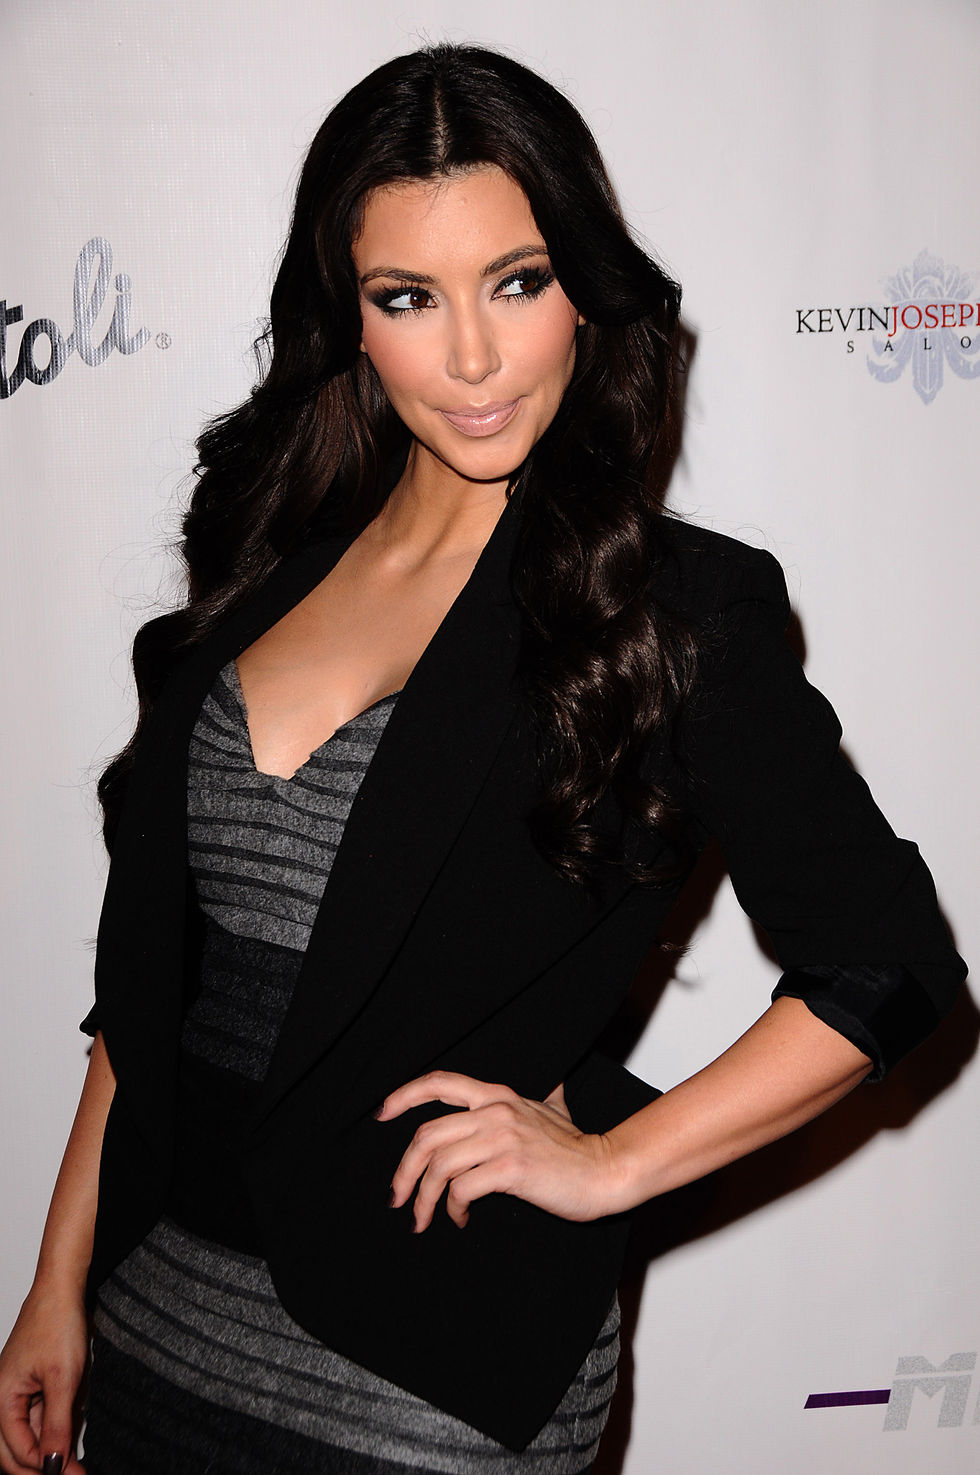 kim-kardashian-shows-cleavage-at-zeugari-fashion-show-01